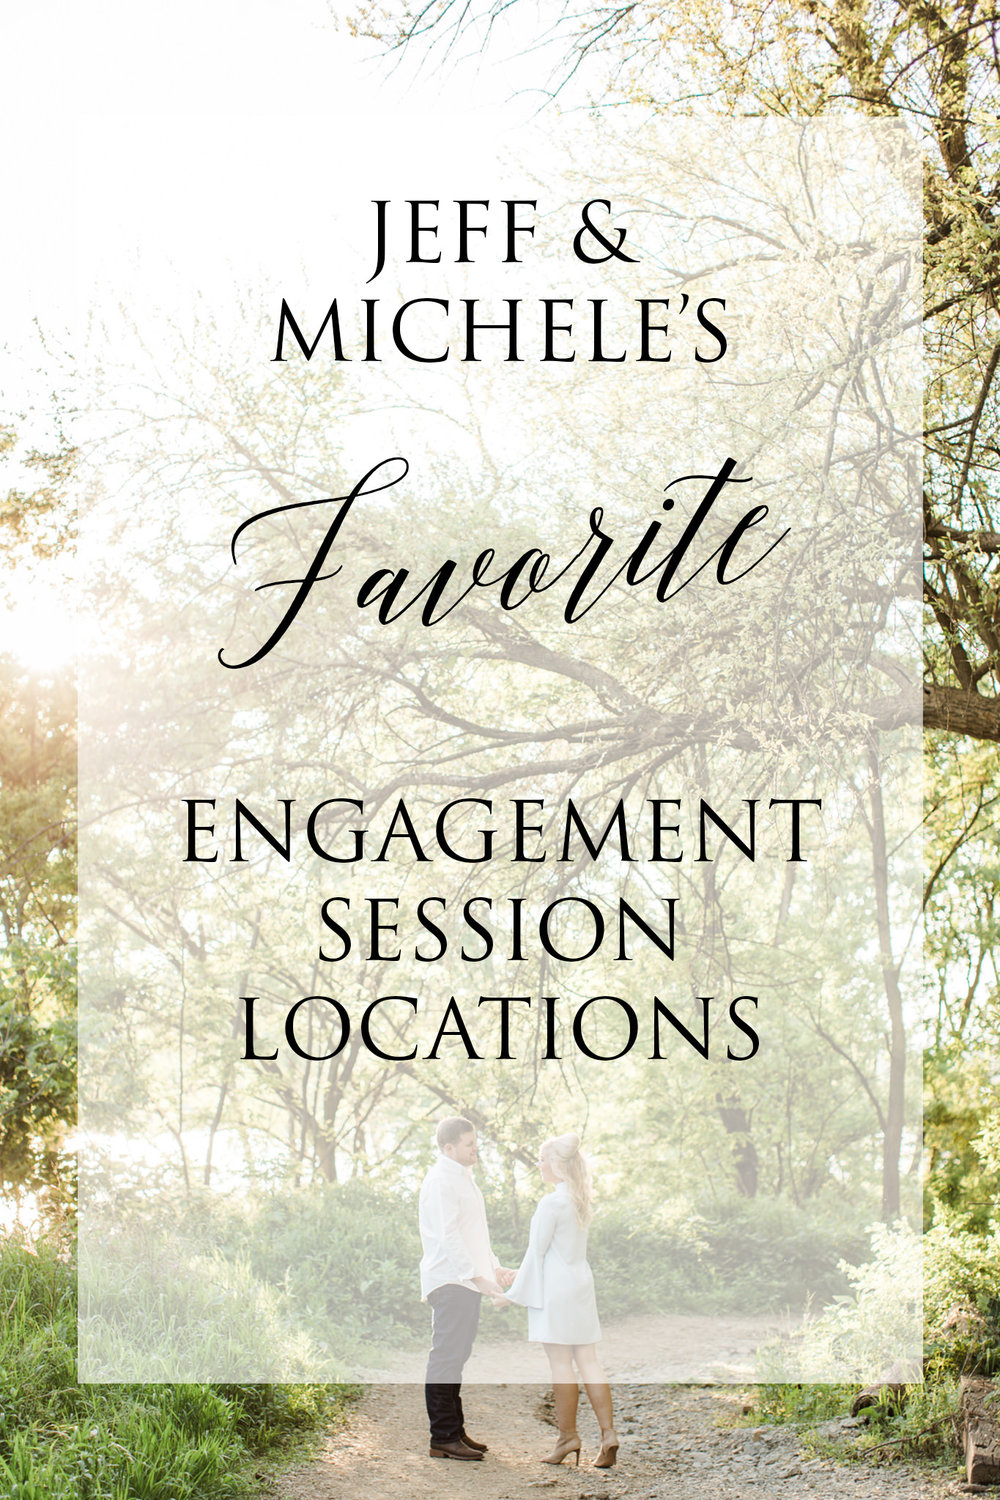 Engagement Session Locations - Our couples often ask for suggestions when it comes to engagement session locations, so we wanted to offer some insight about our favorite places to determine which might be a great fit for you!...read more